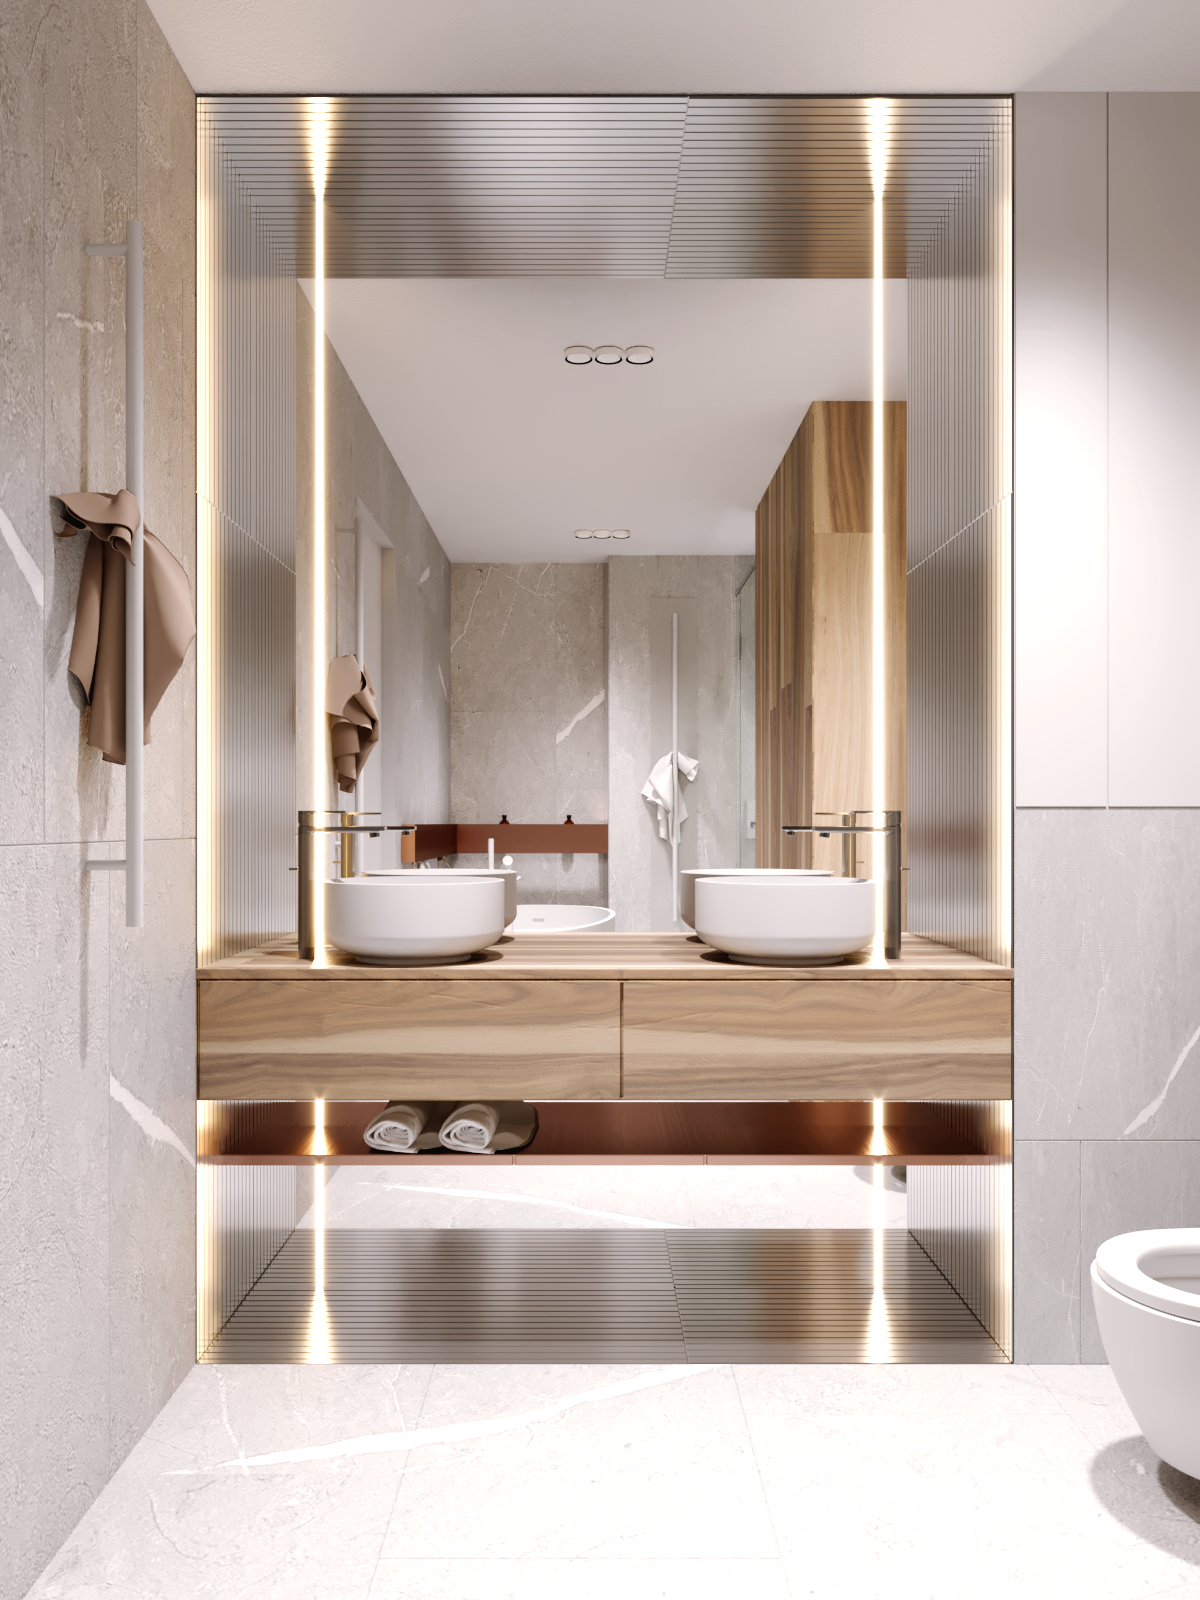 COCOON bathroom vanity design inspiration  modern washbasins